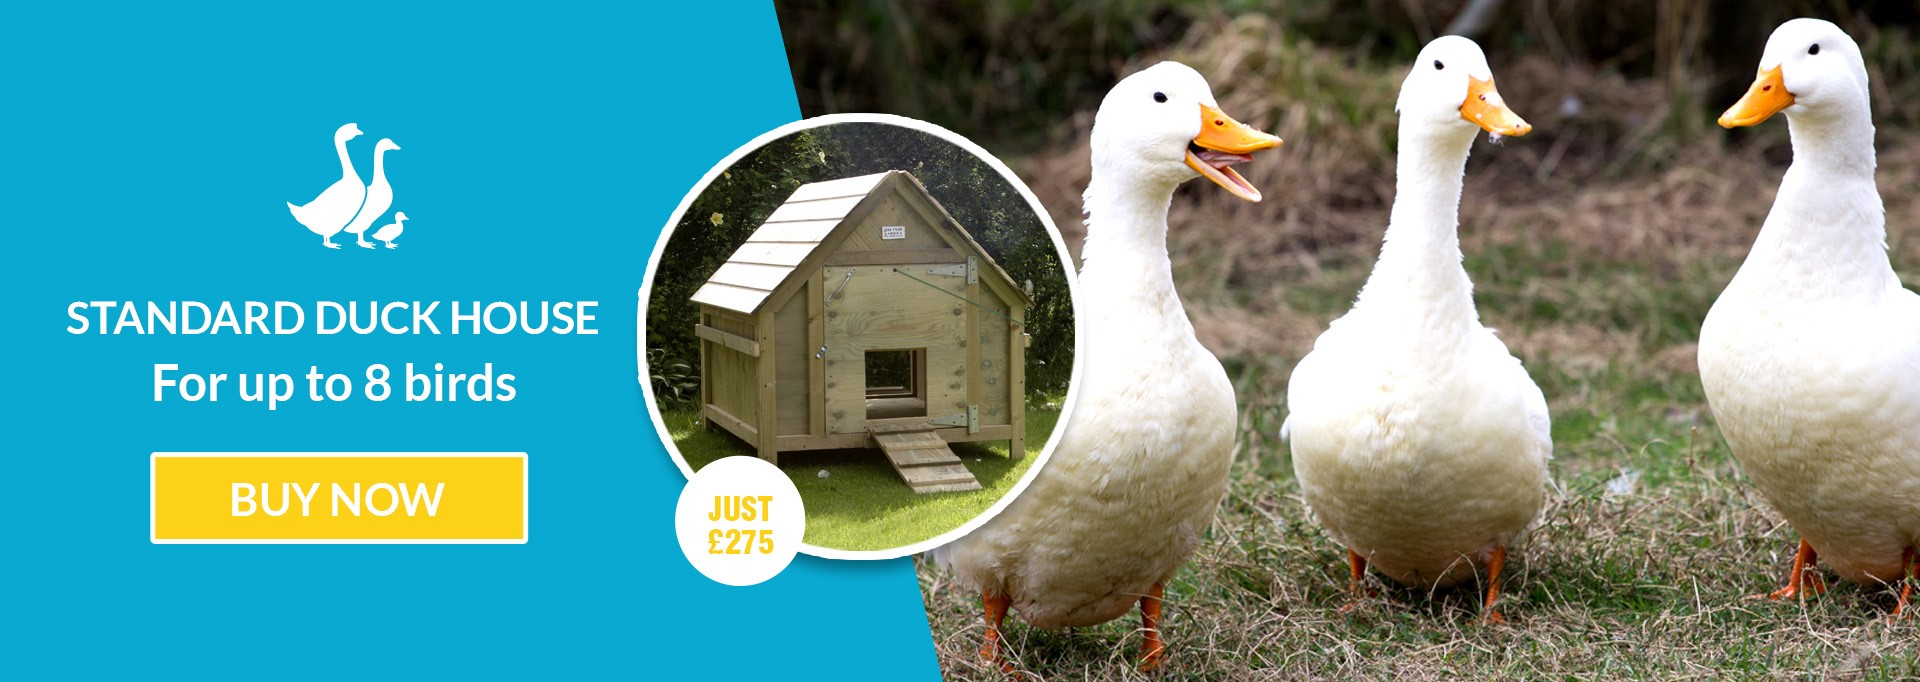 Jim vyse arks bird enclosure for chicken ducks jim vyse arks banner example banner example 2 solutioingenieria Choice Image